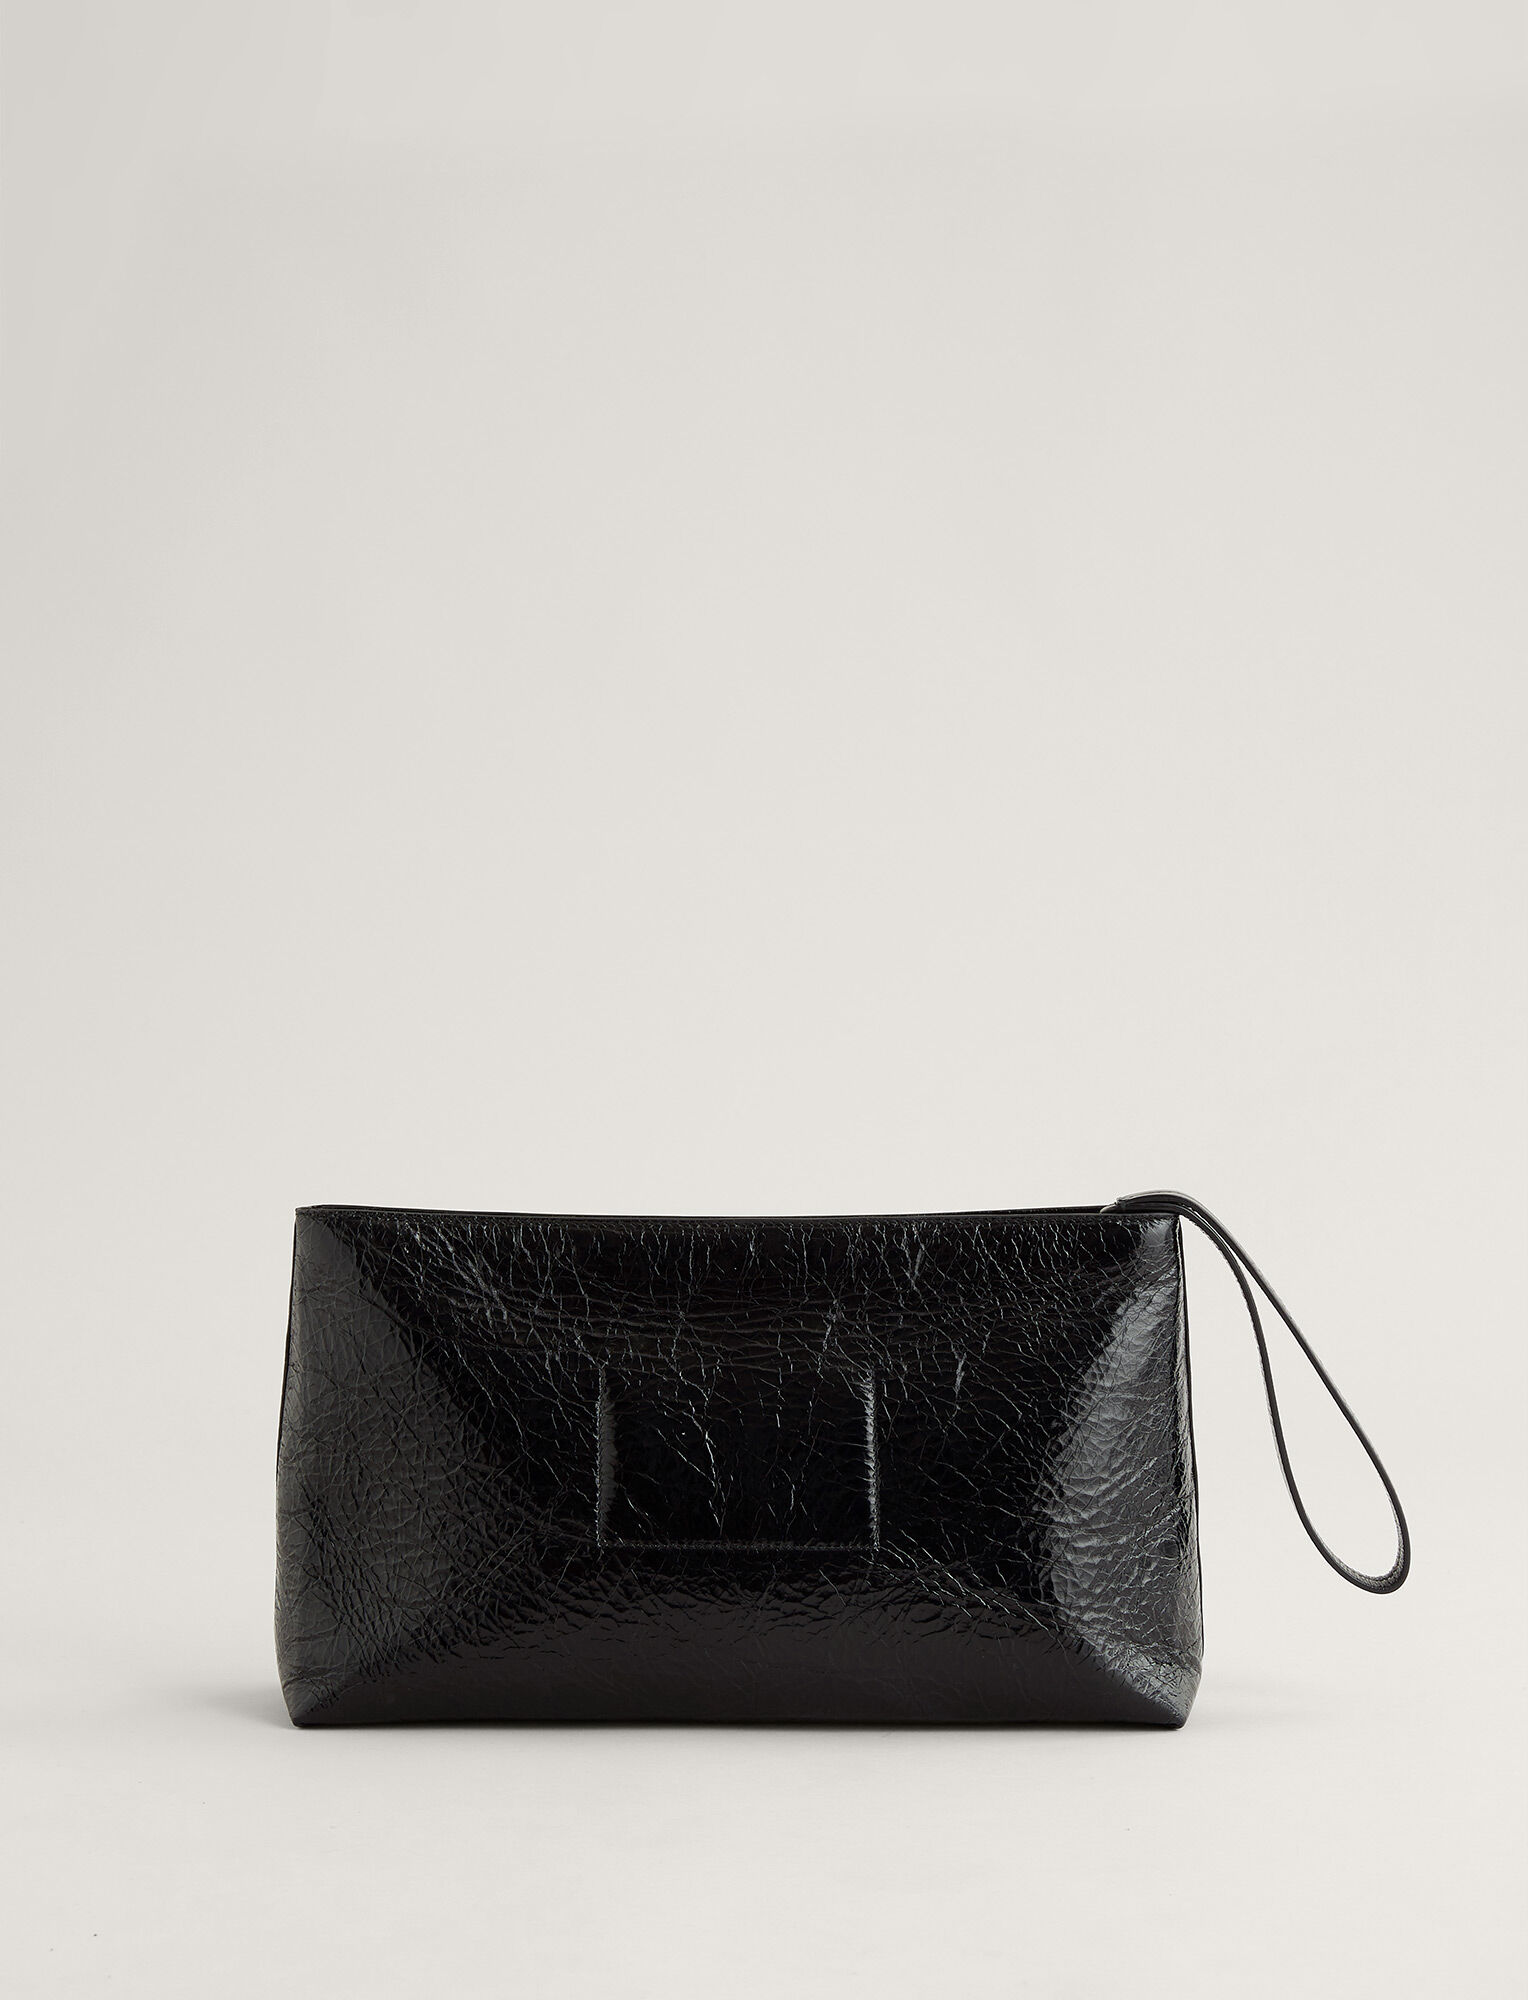 Joseph, Westbourne Clutch Leather Bag, in BLACK